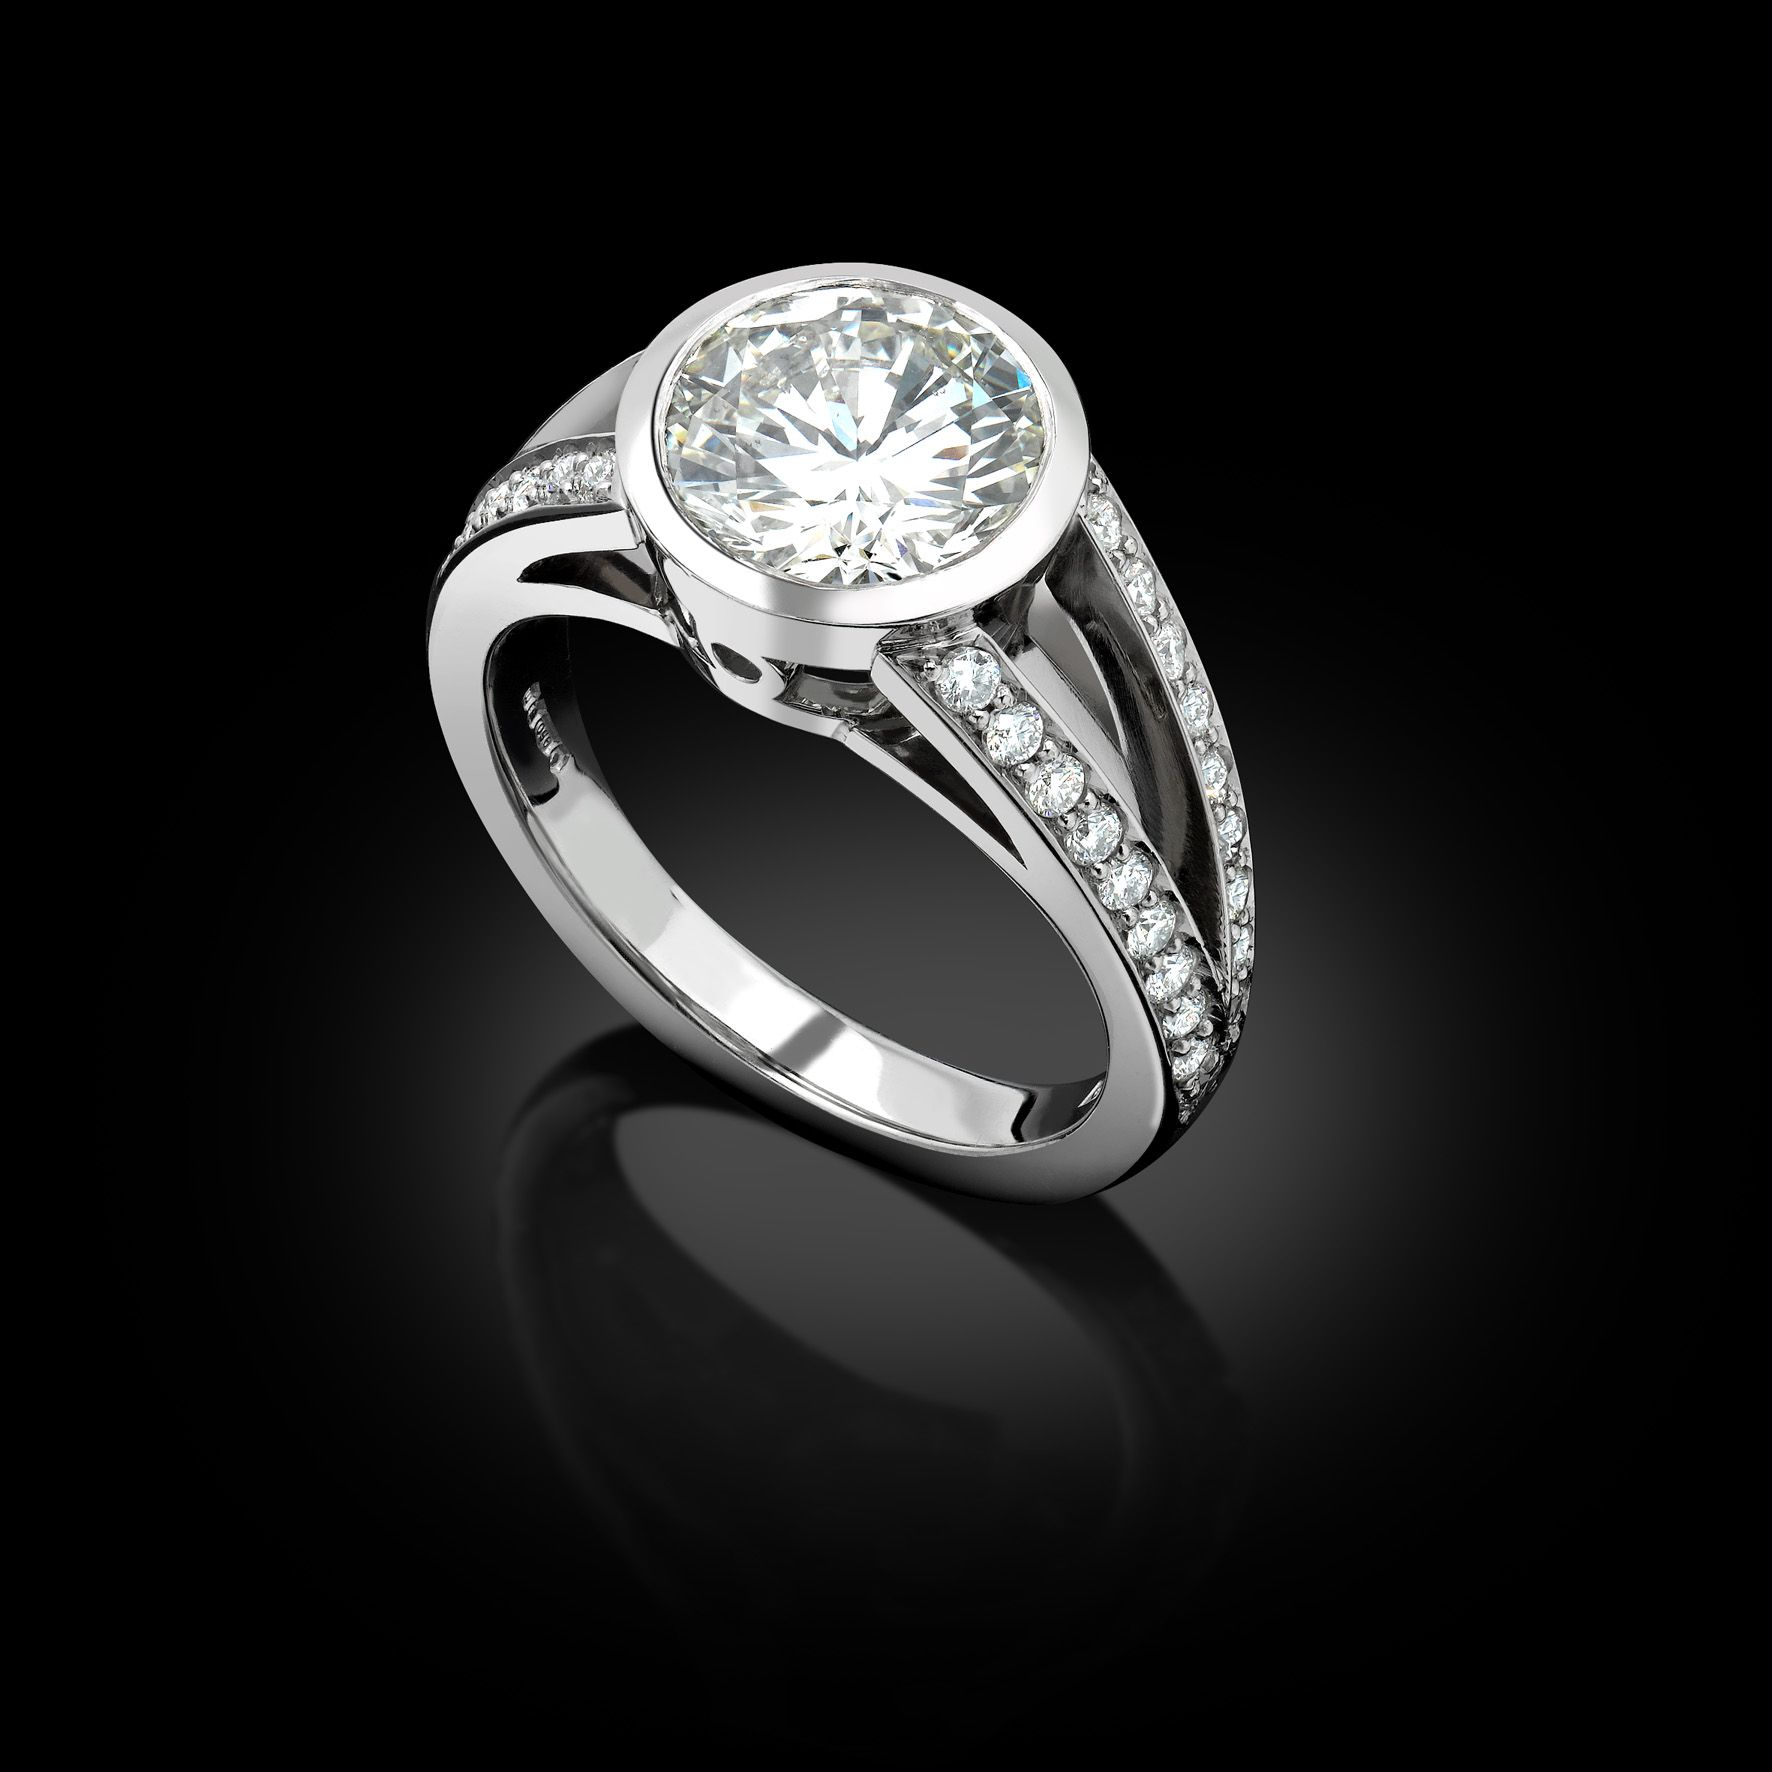 Gallery custom made diamond engagement rings tailor made jewellery